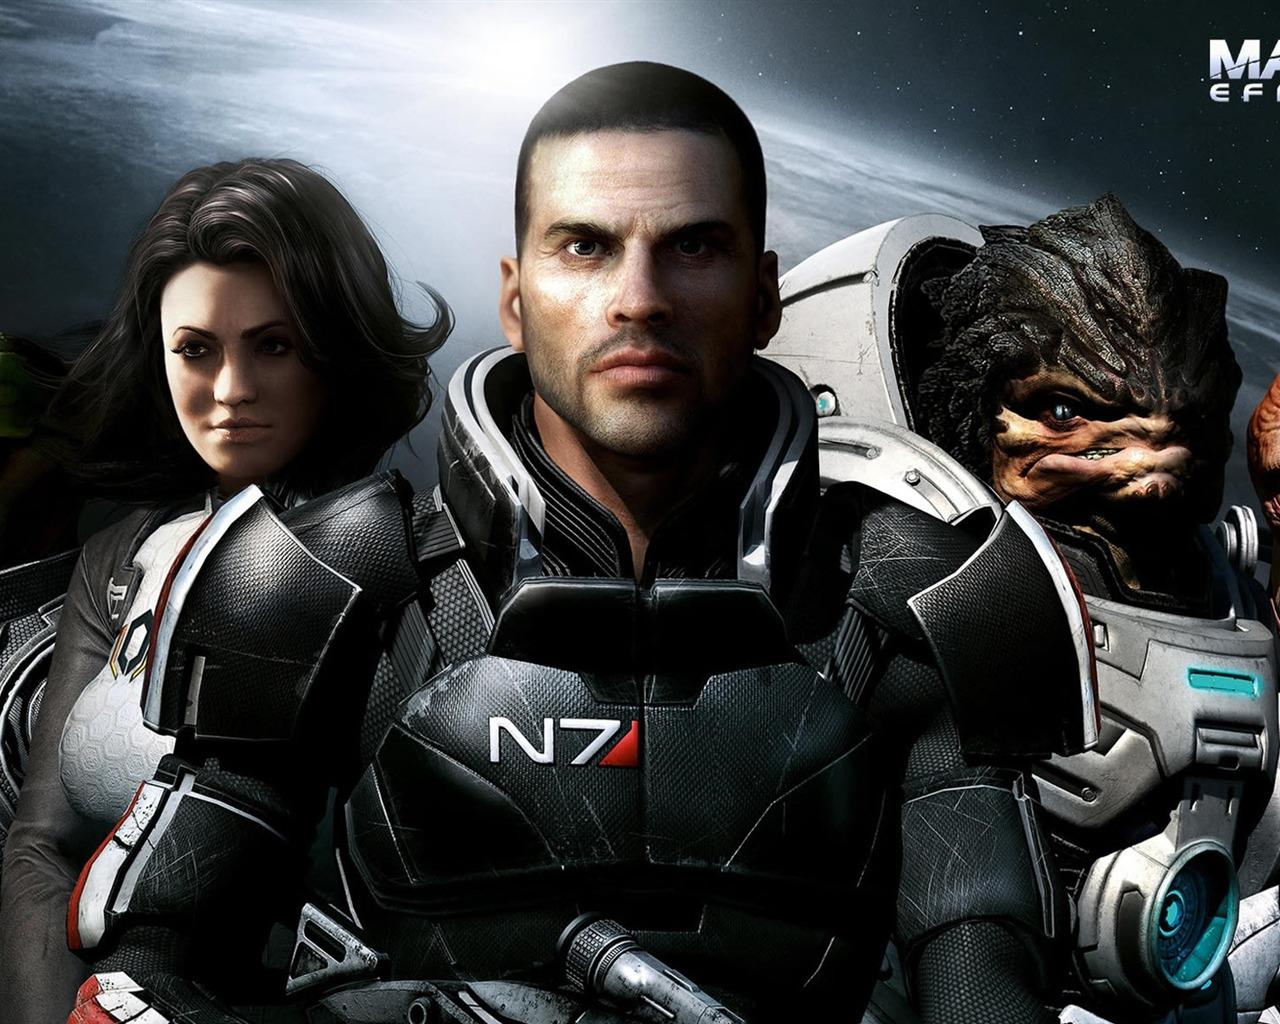 Mass Effect 3 HD wallpapers #16 - 1280x1024